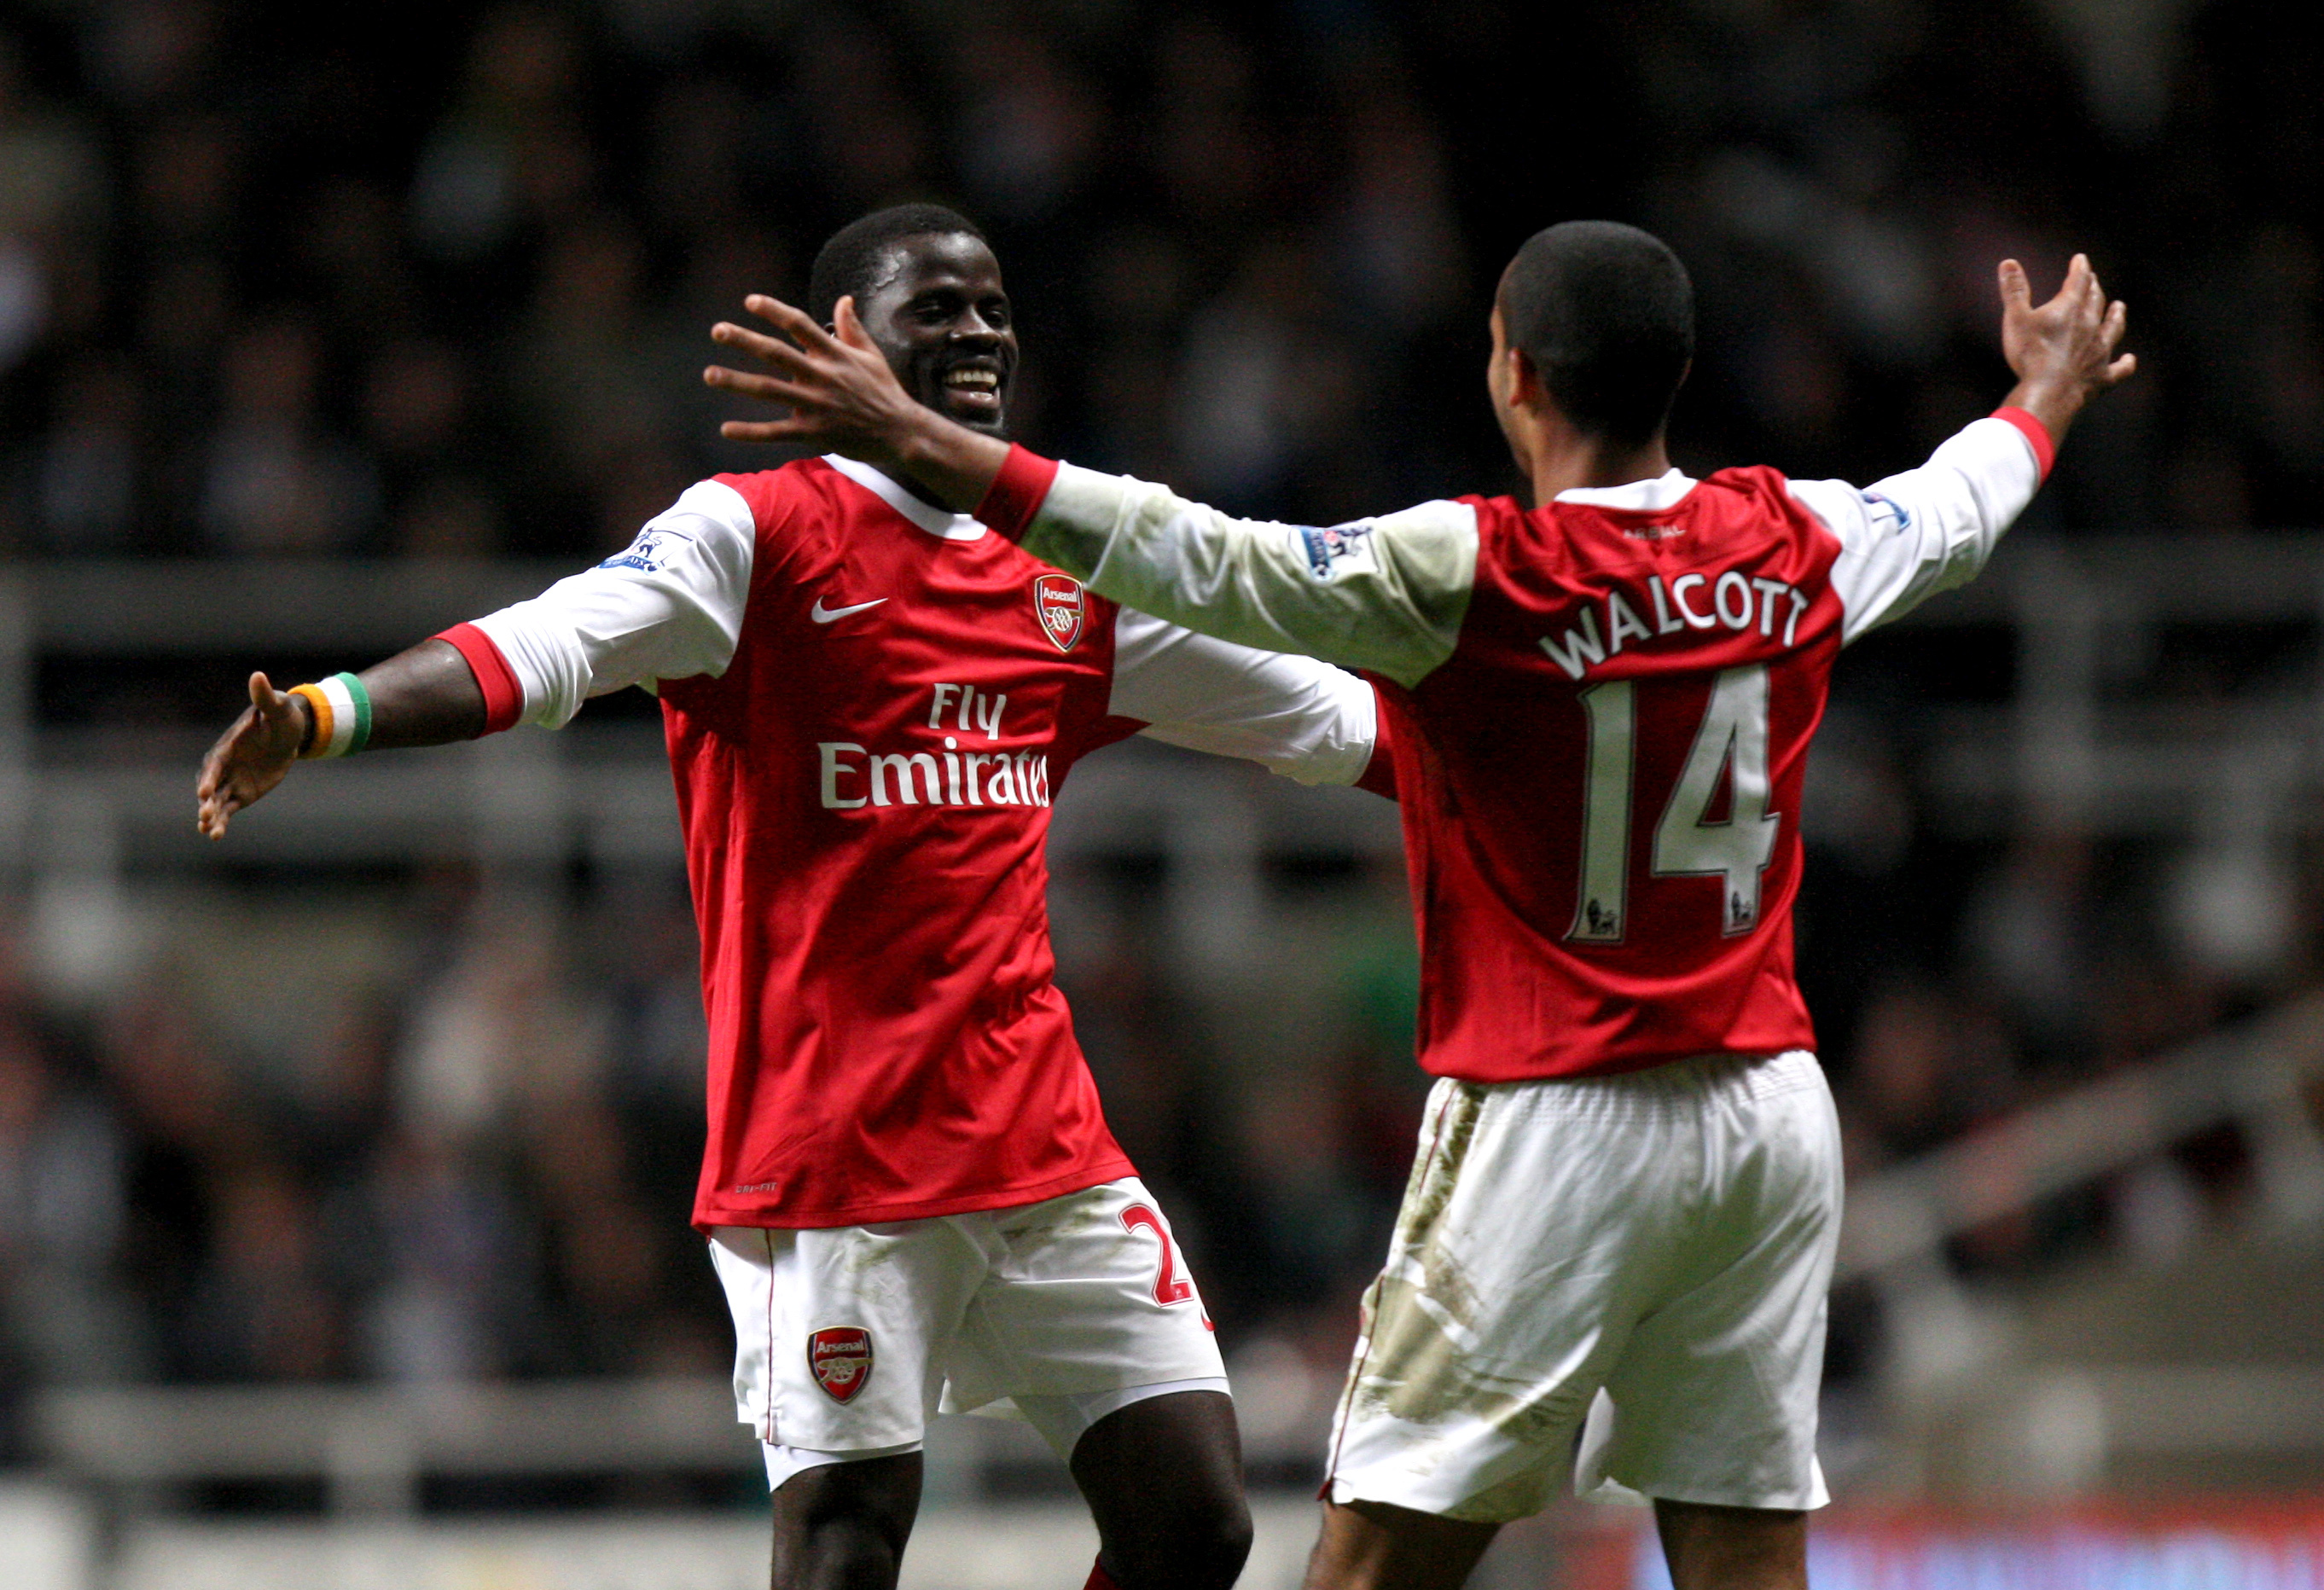 Eboue in happier times at Arsenal. Image: PA Images.